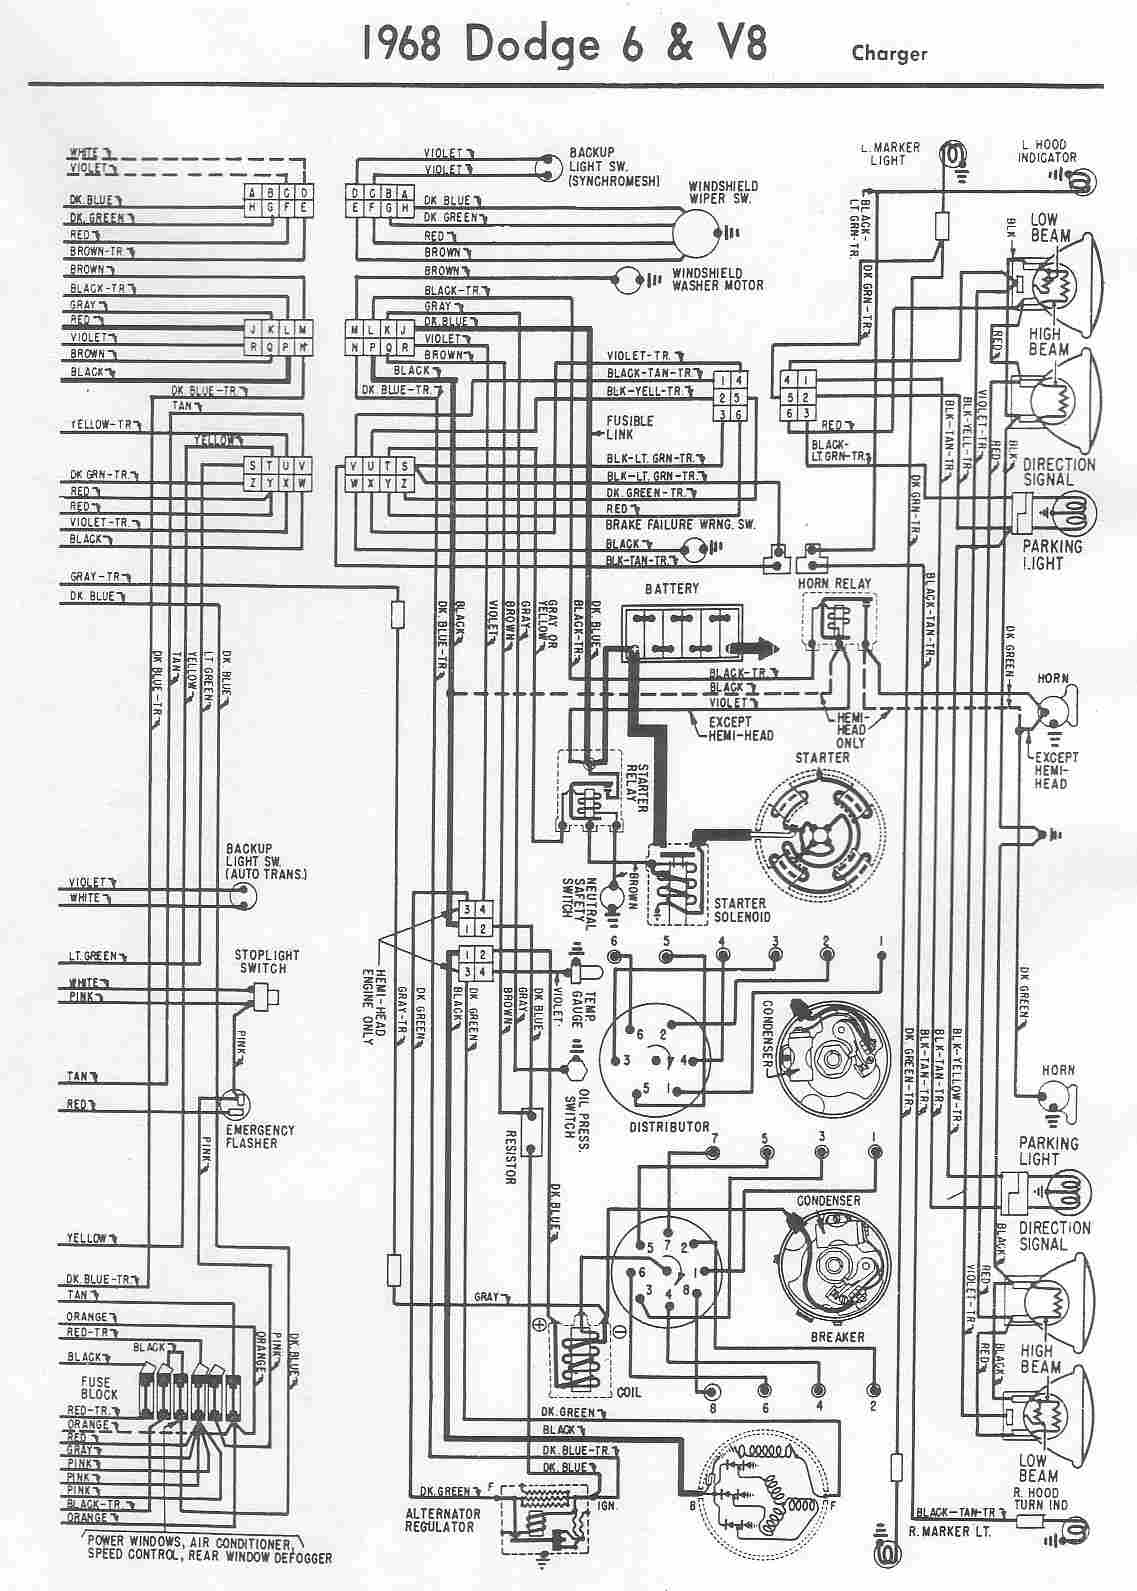 small resolution of chrysler 300 starter wiring diagram 20 10 artatec automobile de u20222006 chrysler 300 starter wiring